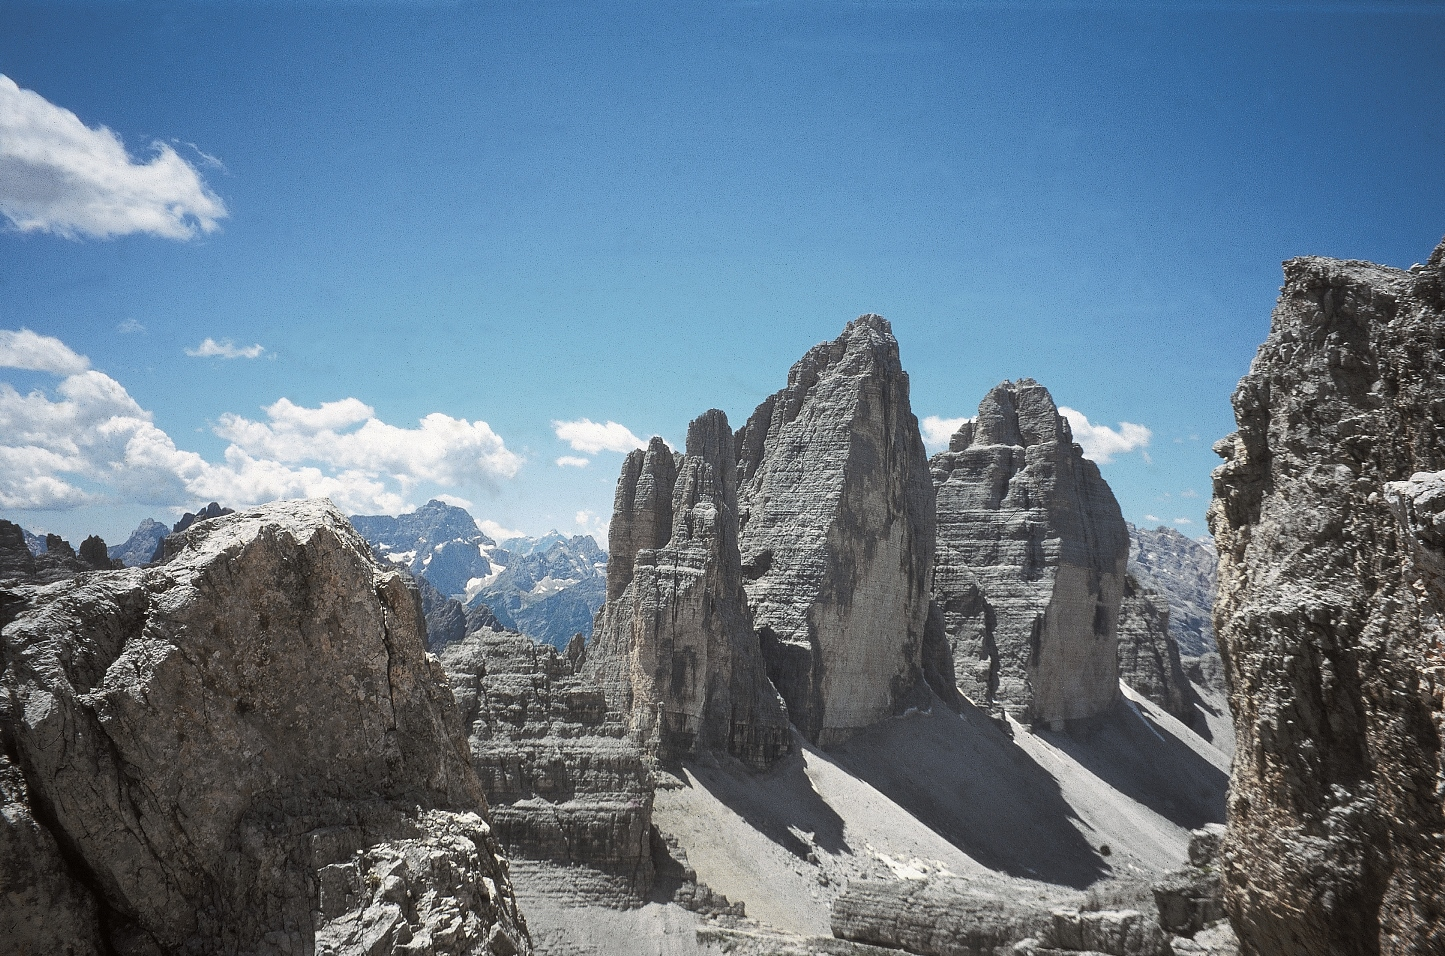 The Dolomites are perfect for Via Ferrata trekking